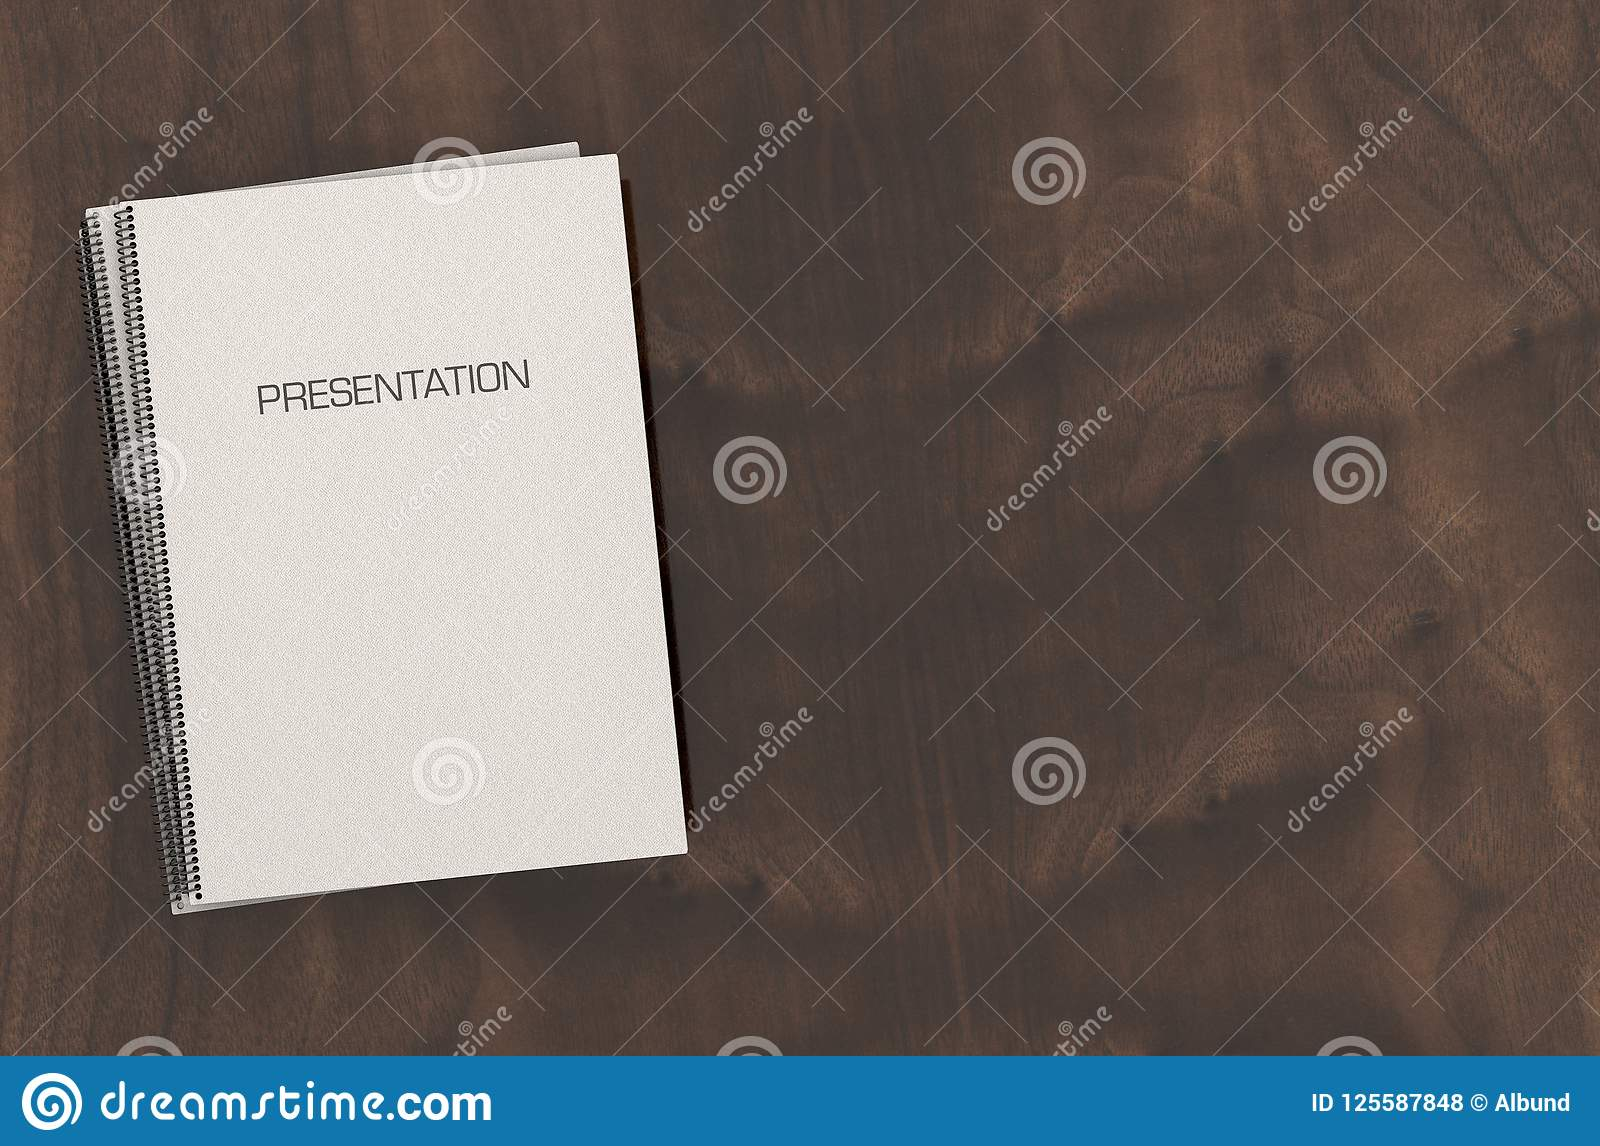 bound presentation booklet pile stock photo image of boardroom